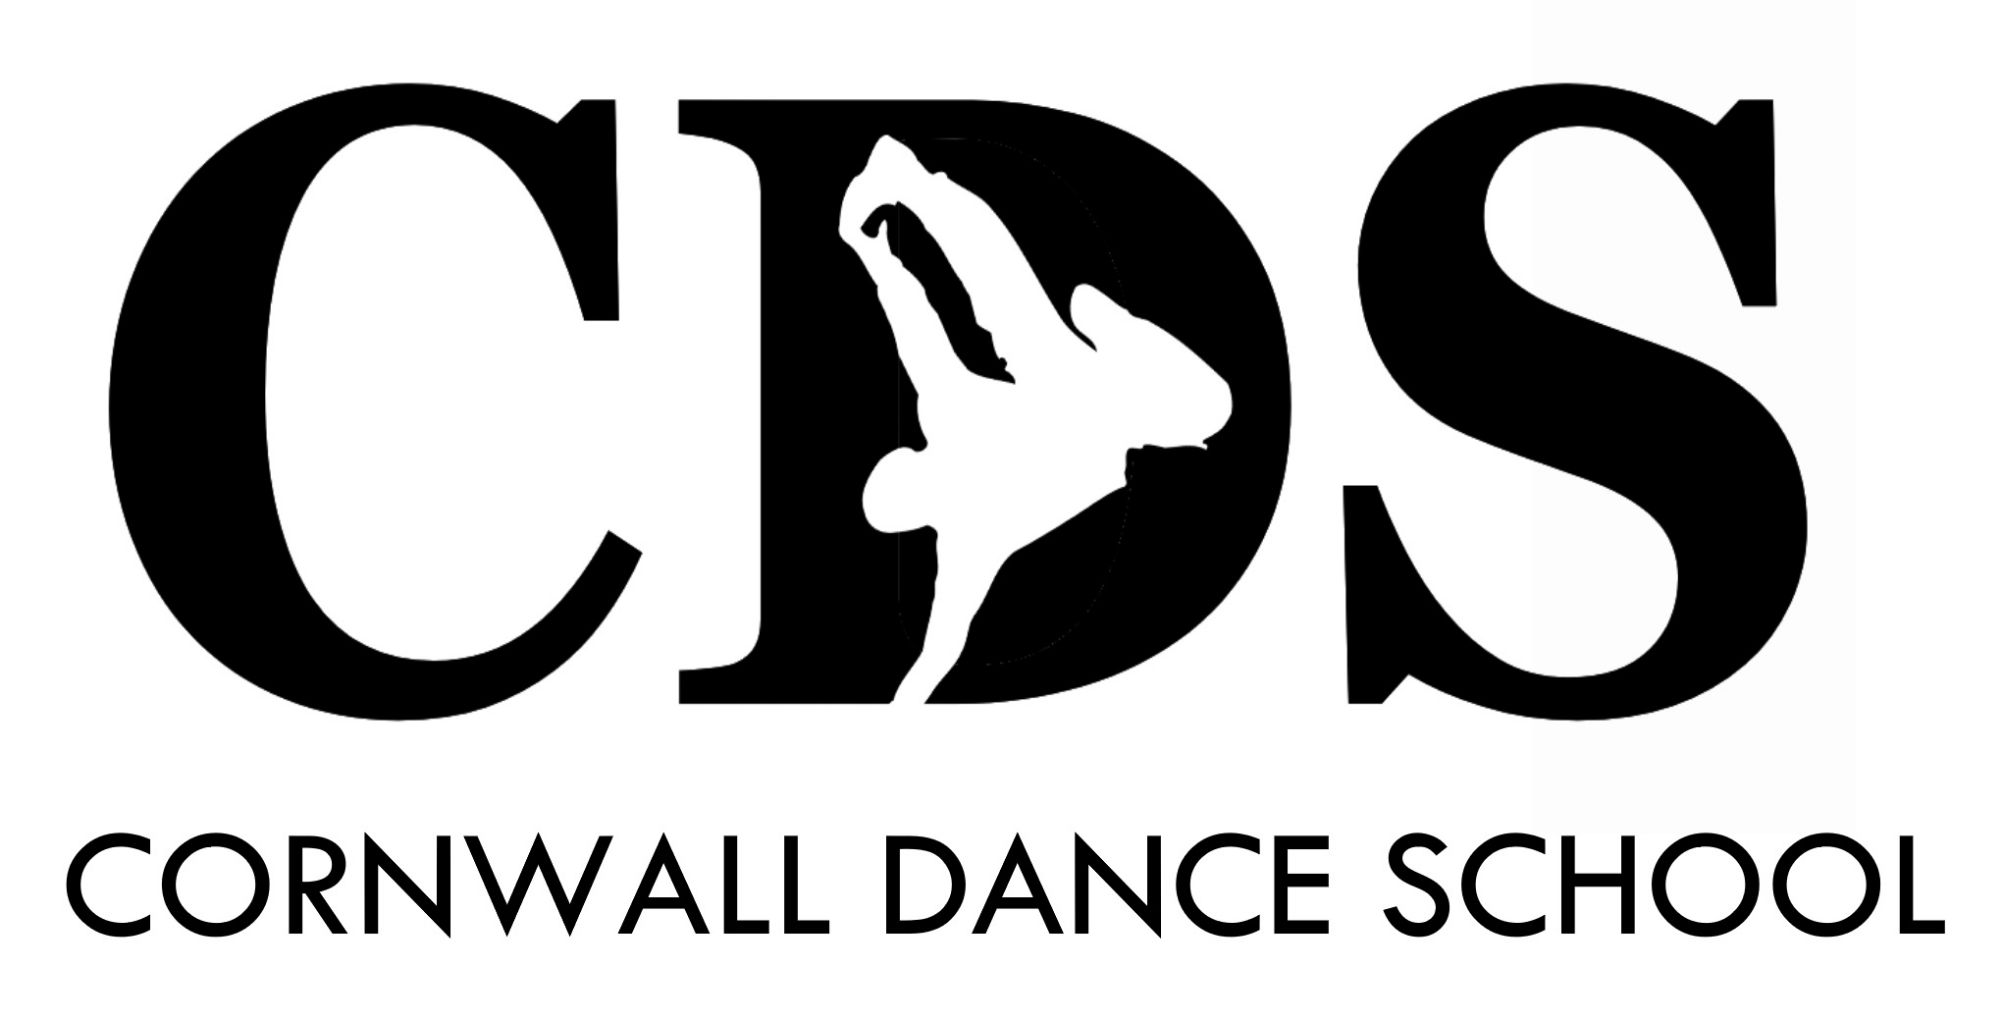 Cornwall Dance School - Fun, friendly and professional Dance Classes across Cornwall. Venues include Truro, Falmouth Helston and Newquay.